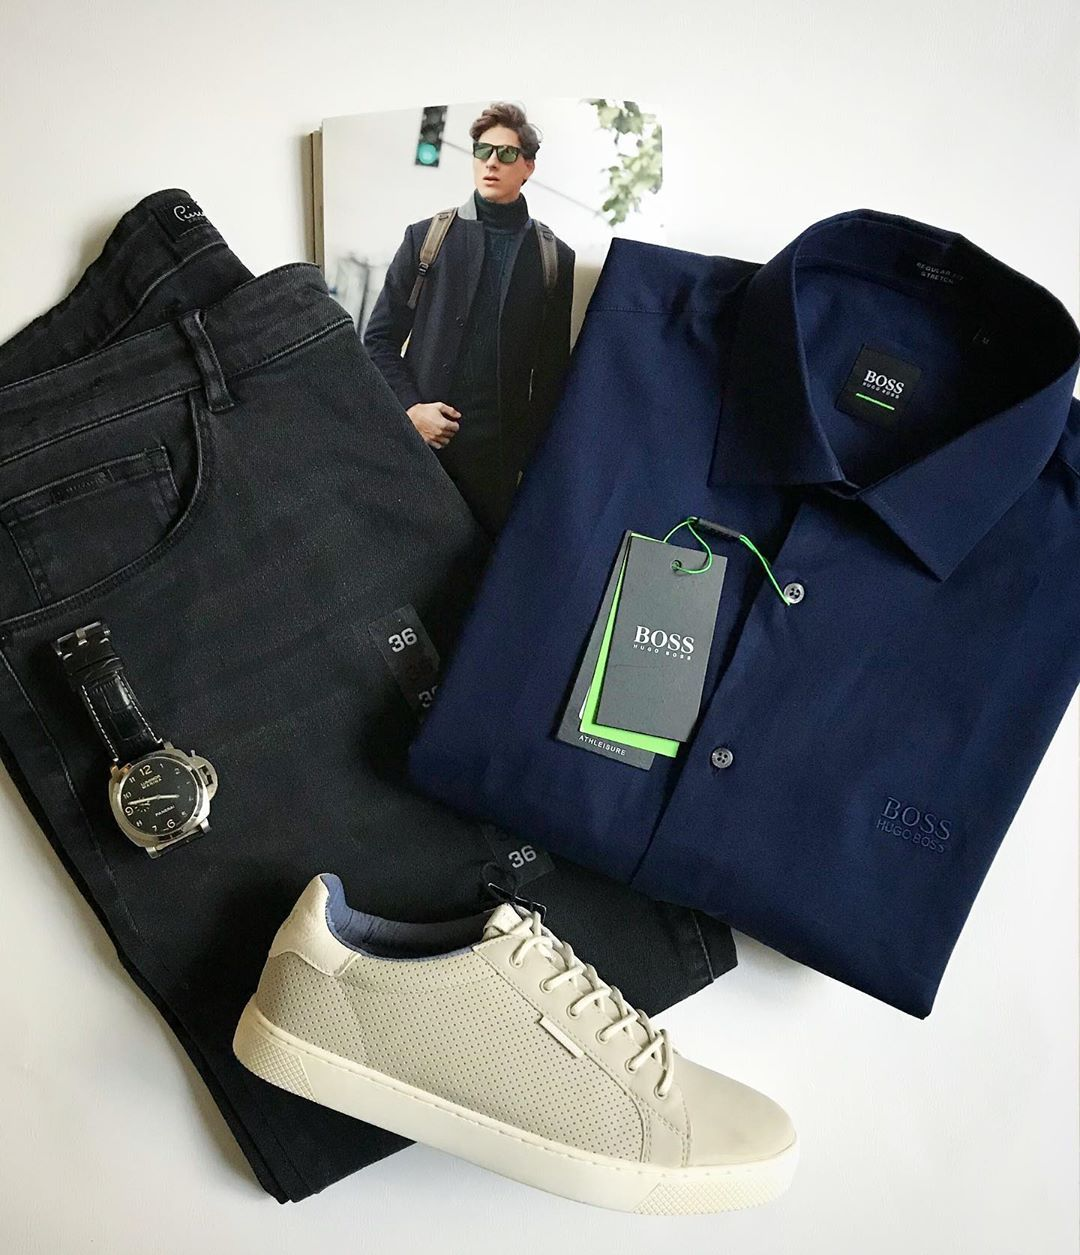 Pierre Cardin Jeans Mens Fashion Fashion Military Jacket